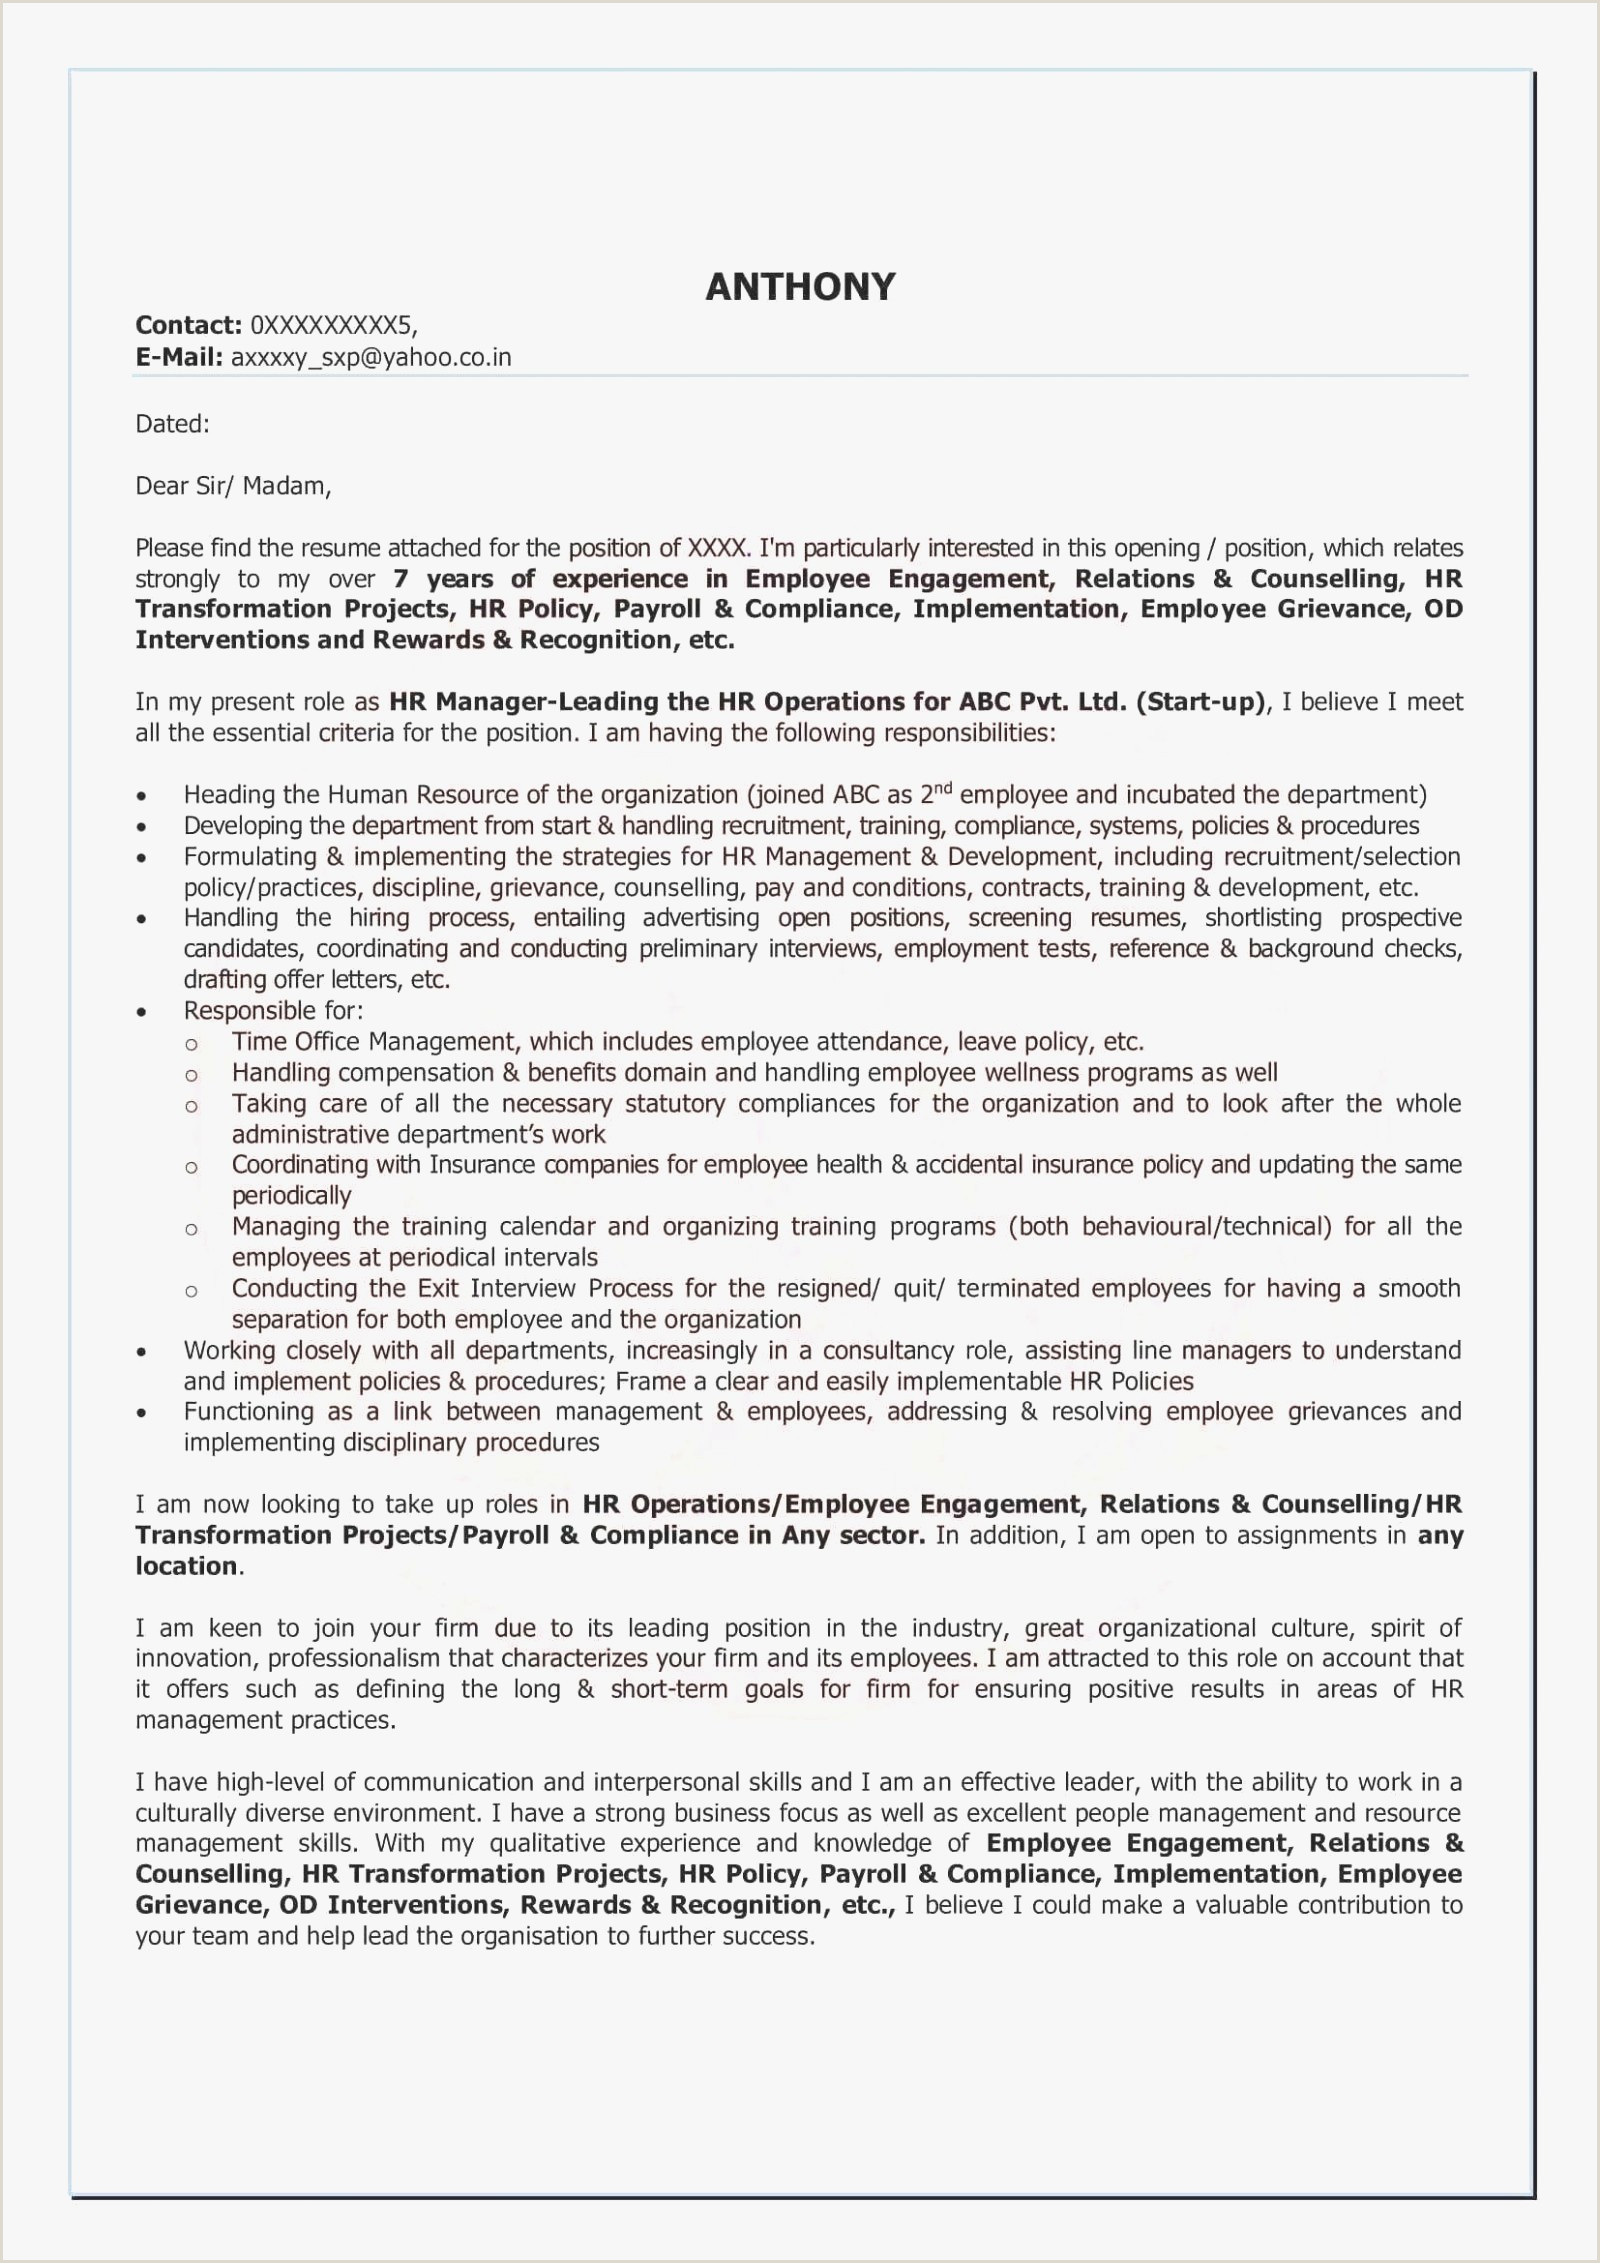 Example Cover Letter For Hospitality Position – My